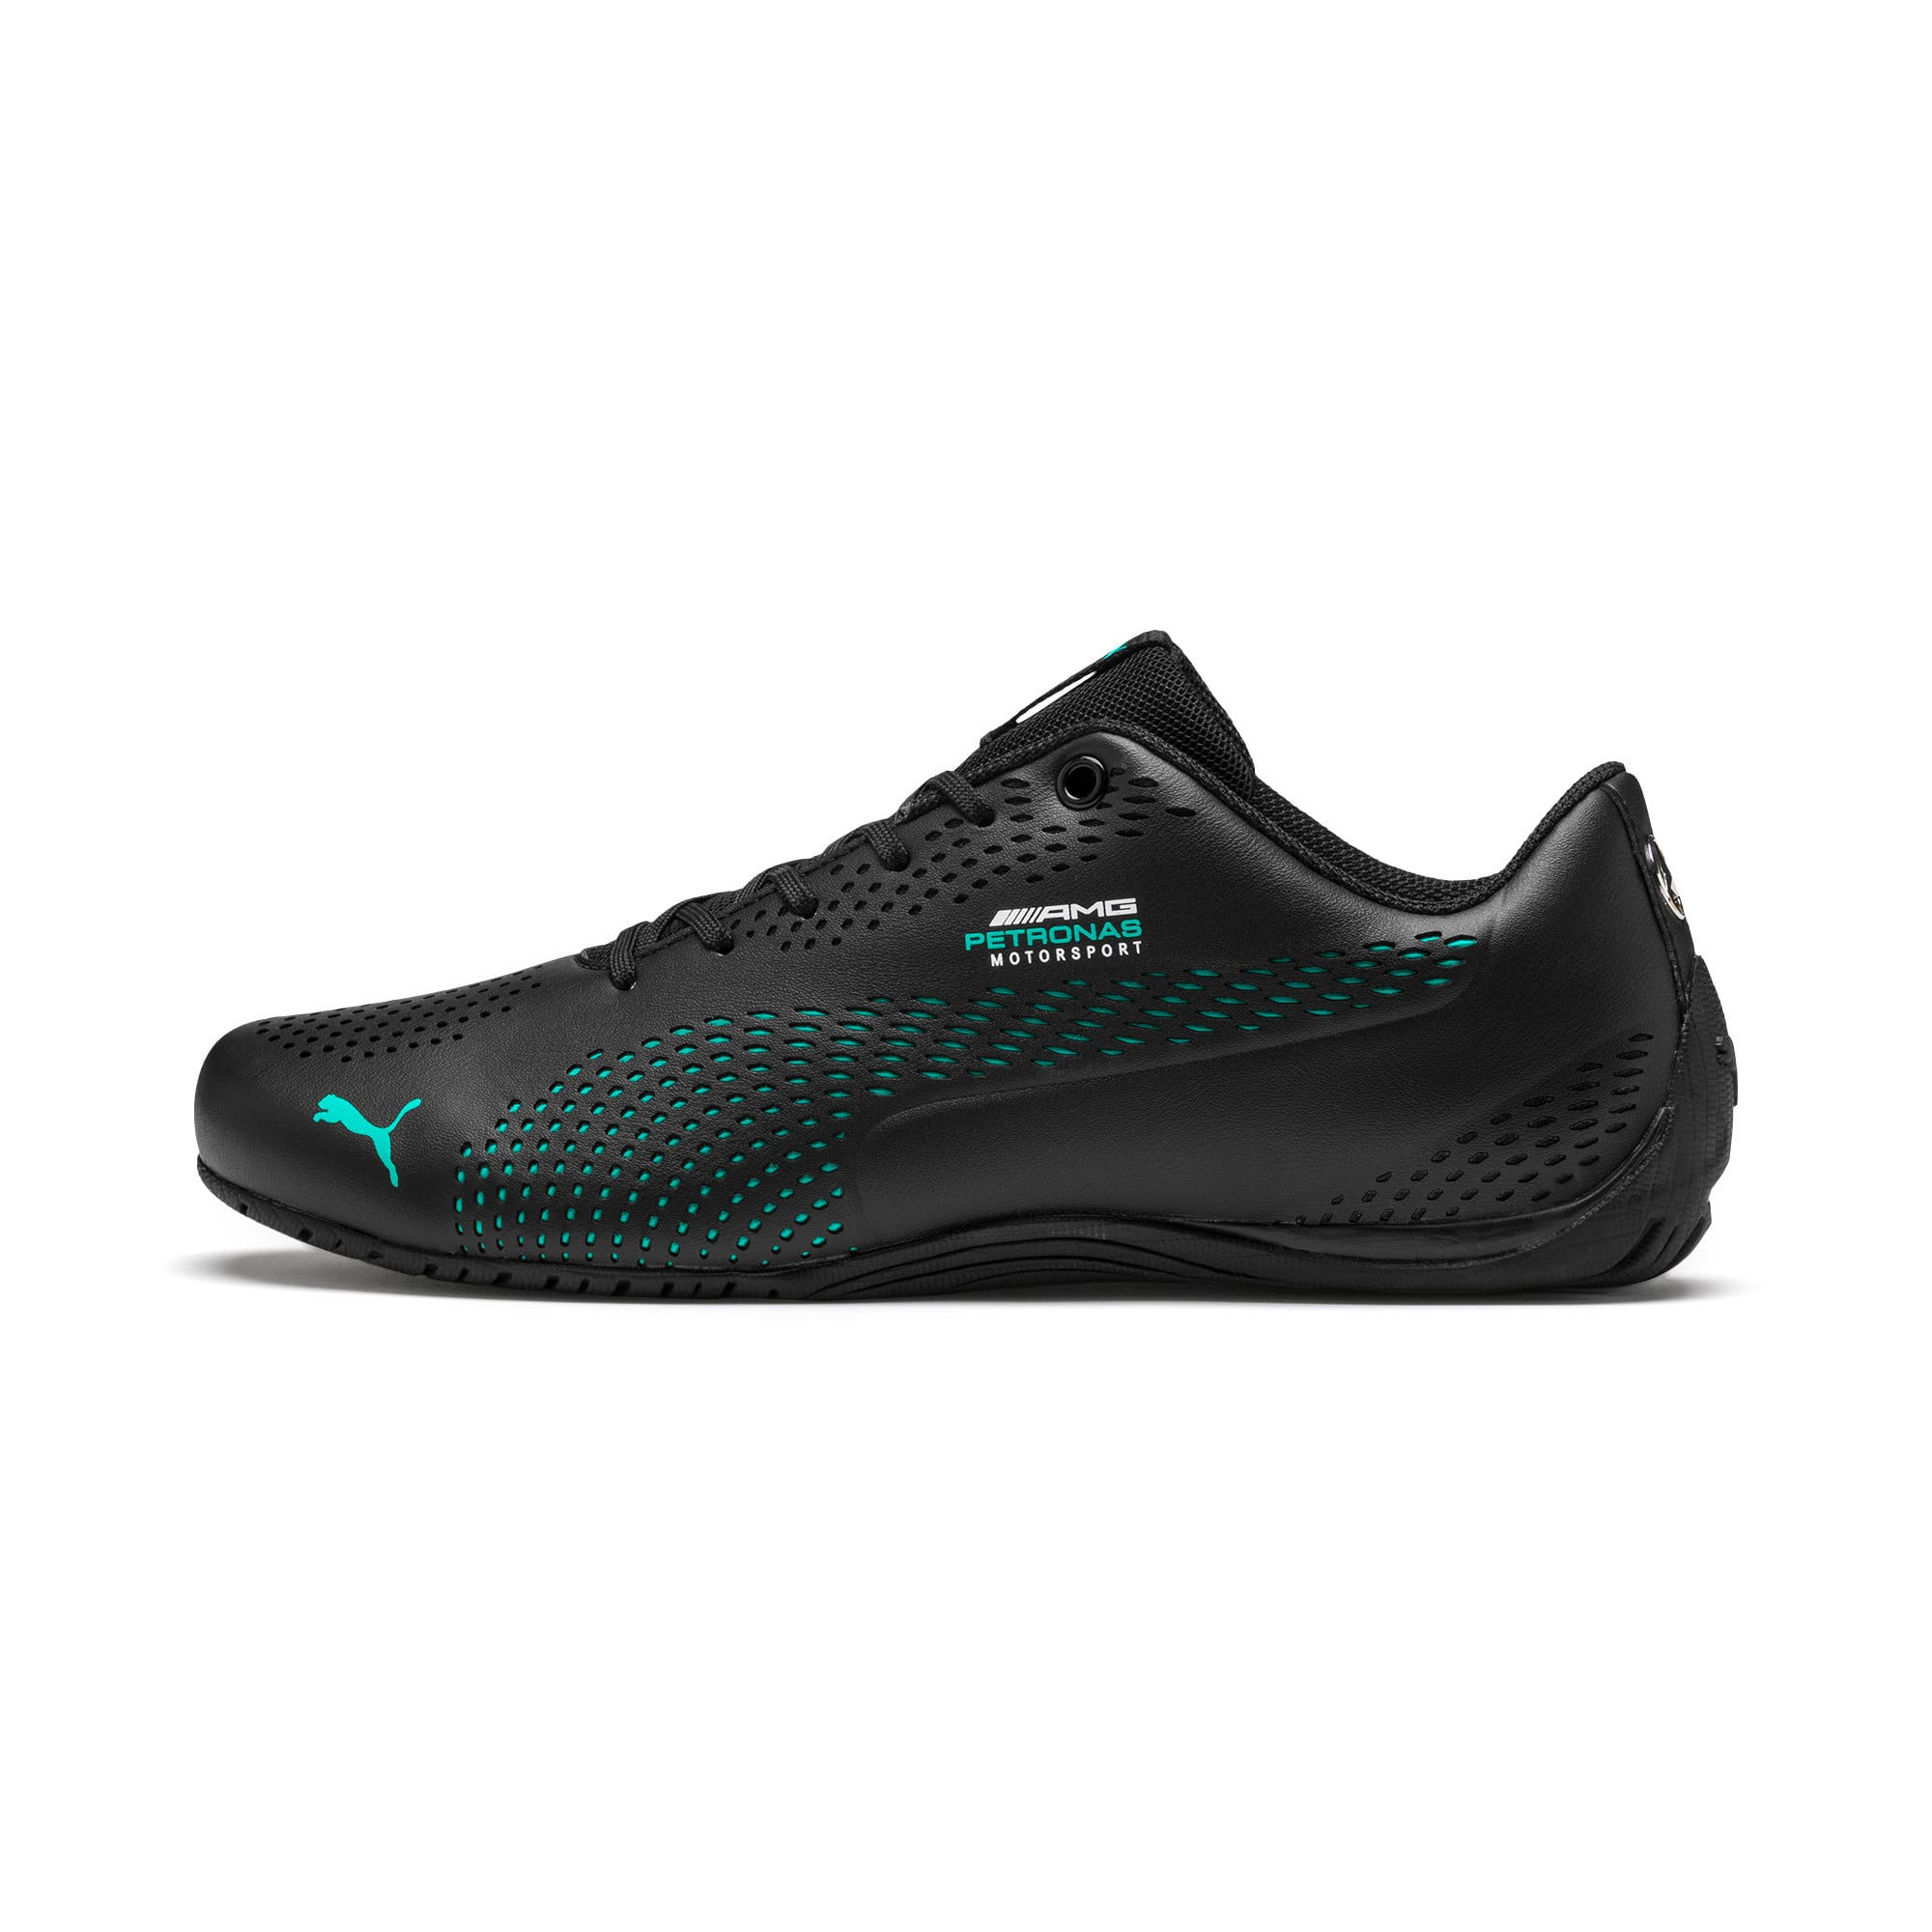 Thumbnail 1 of Mercedes AMG Petronas Drift Cat 5 Ultra II Shoes, Puma Black-Spectra Green, medium